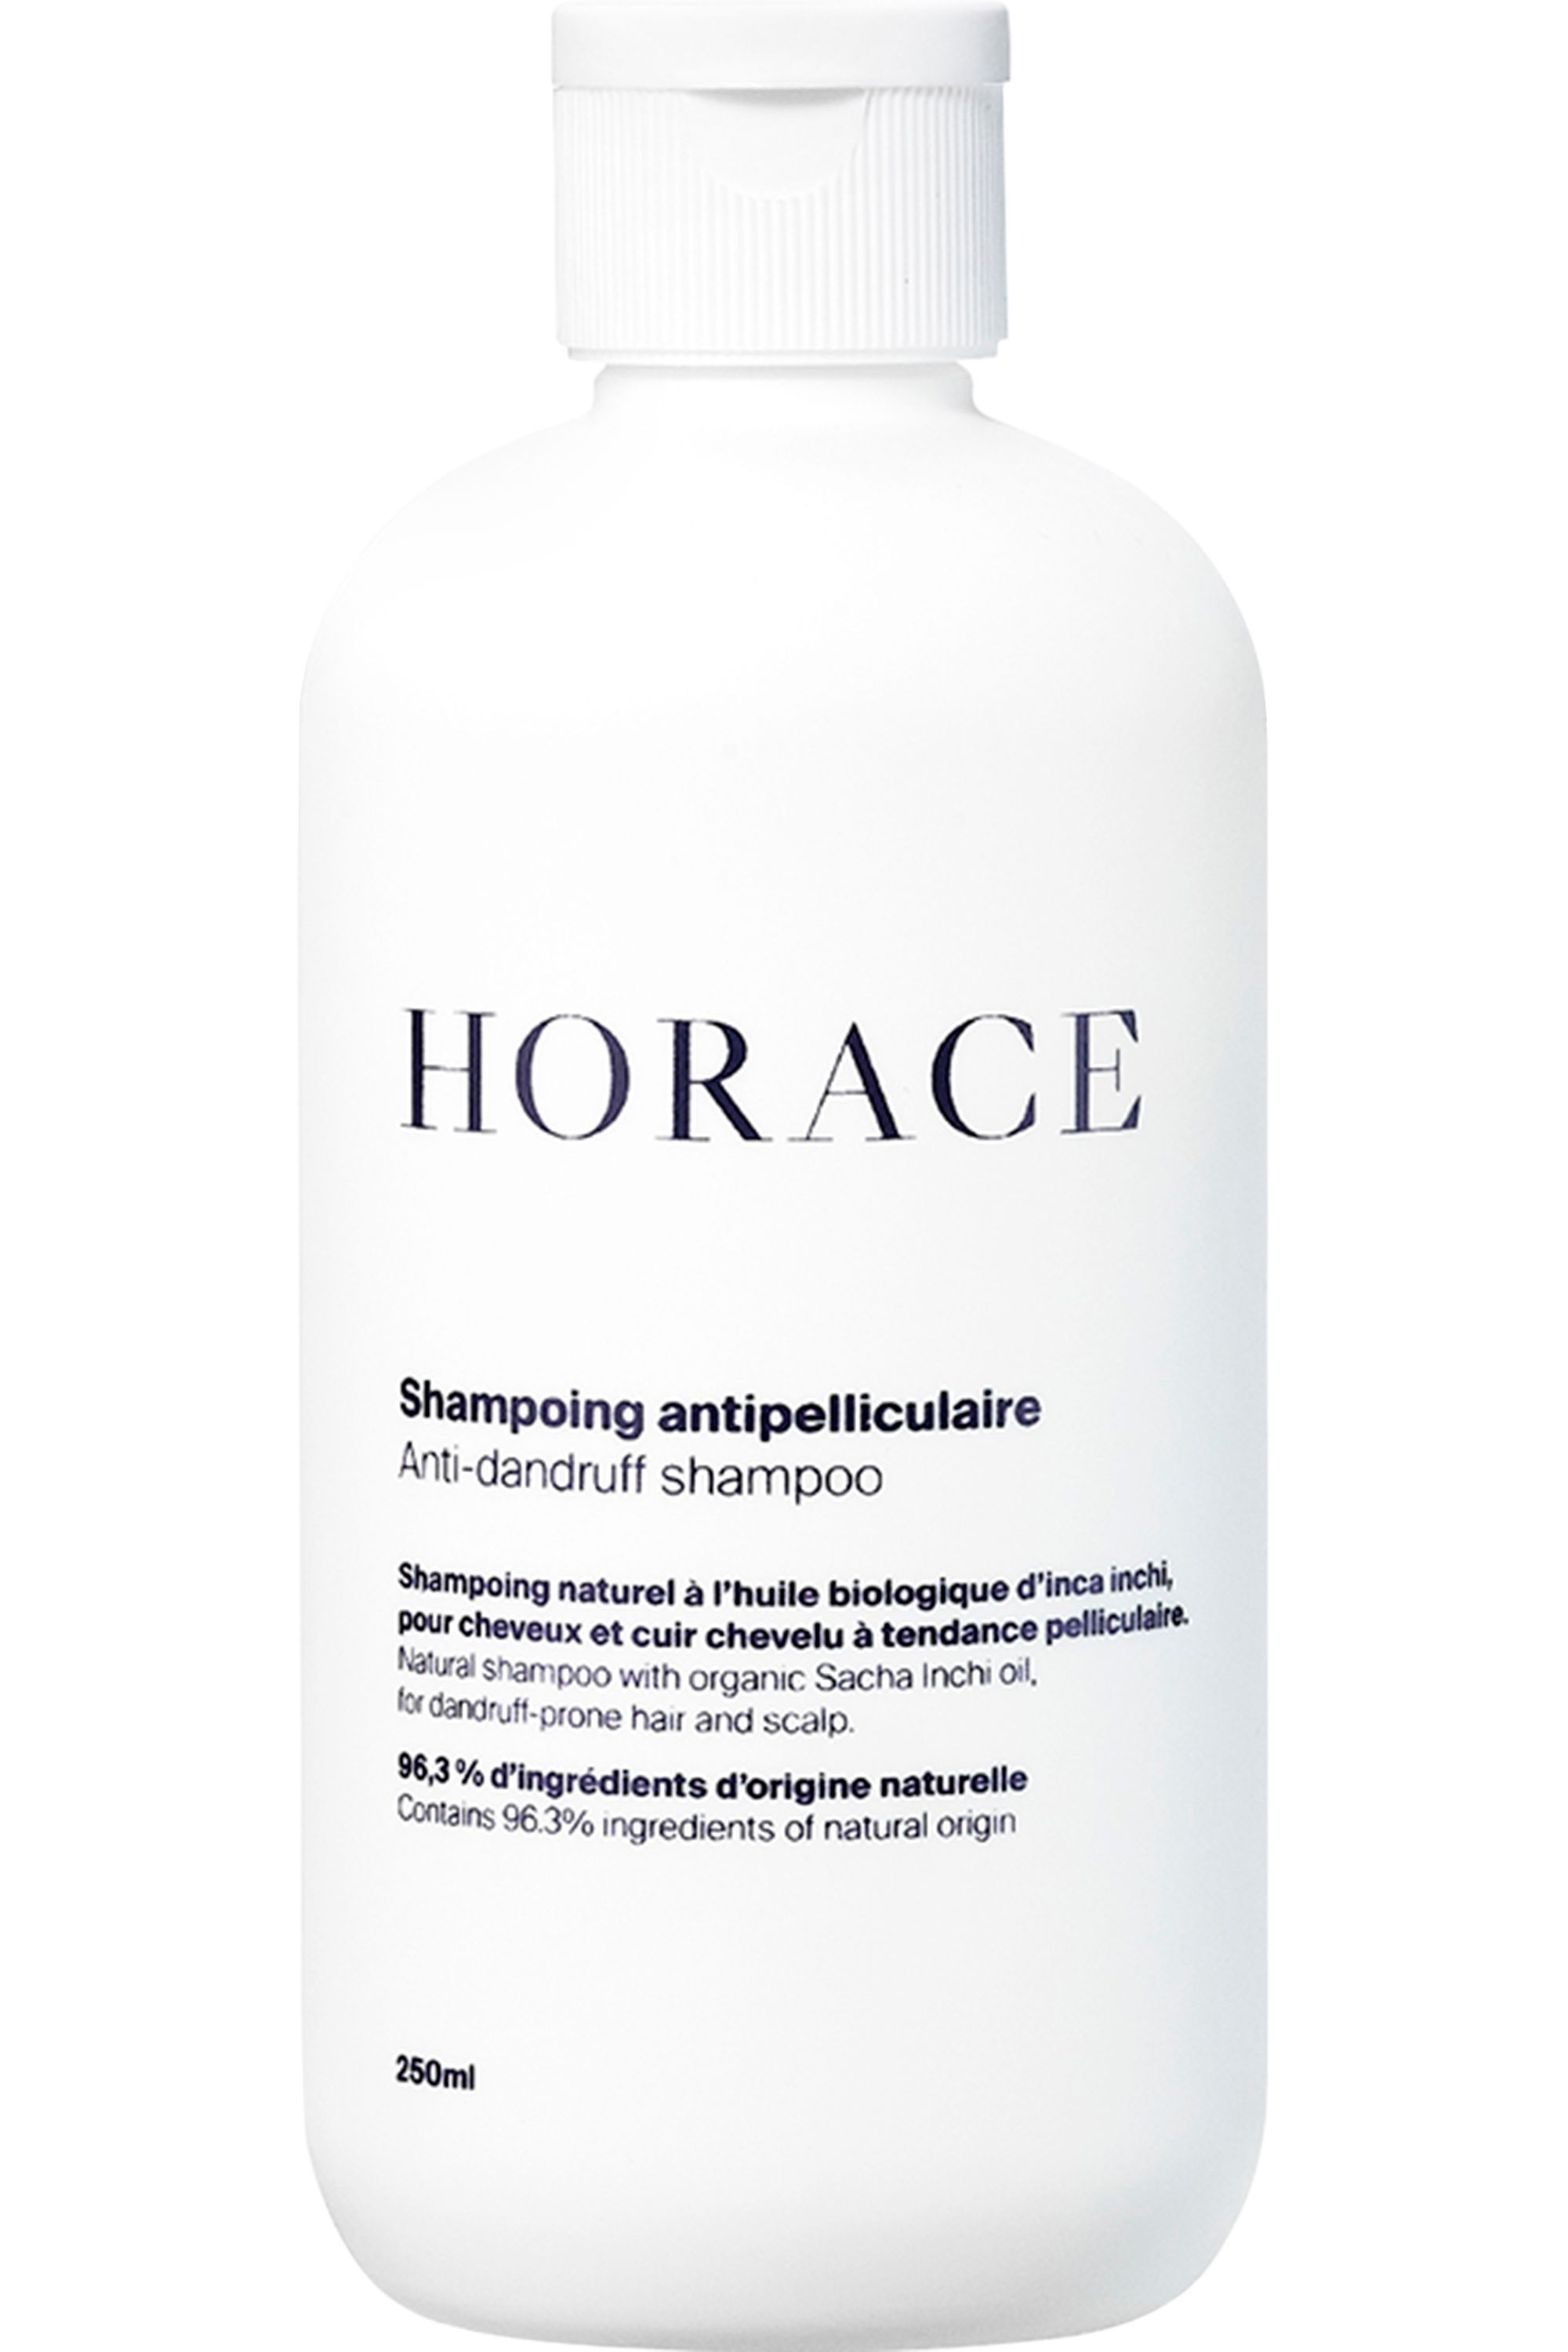 Blissim : Horace - Shampoing anti-pelicullaire doux - Shampoing anti-pelicullaire doux